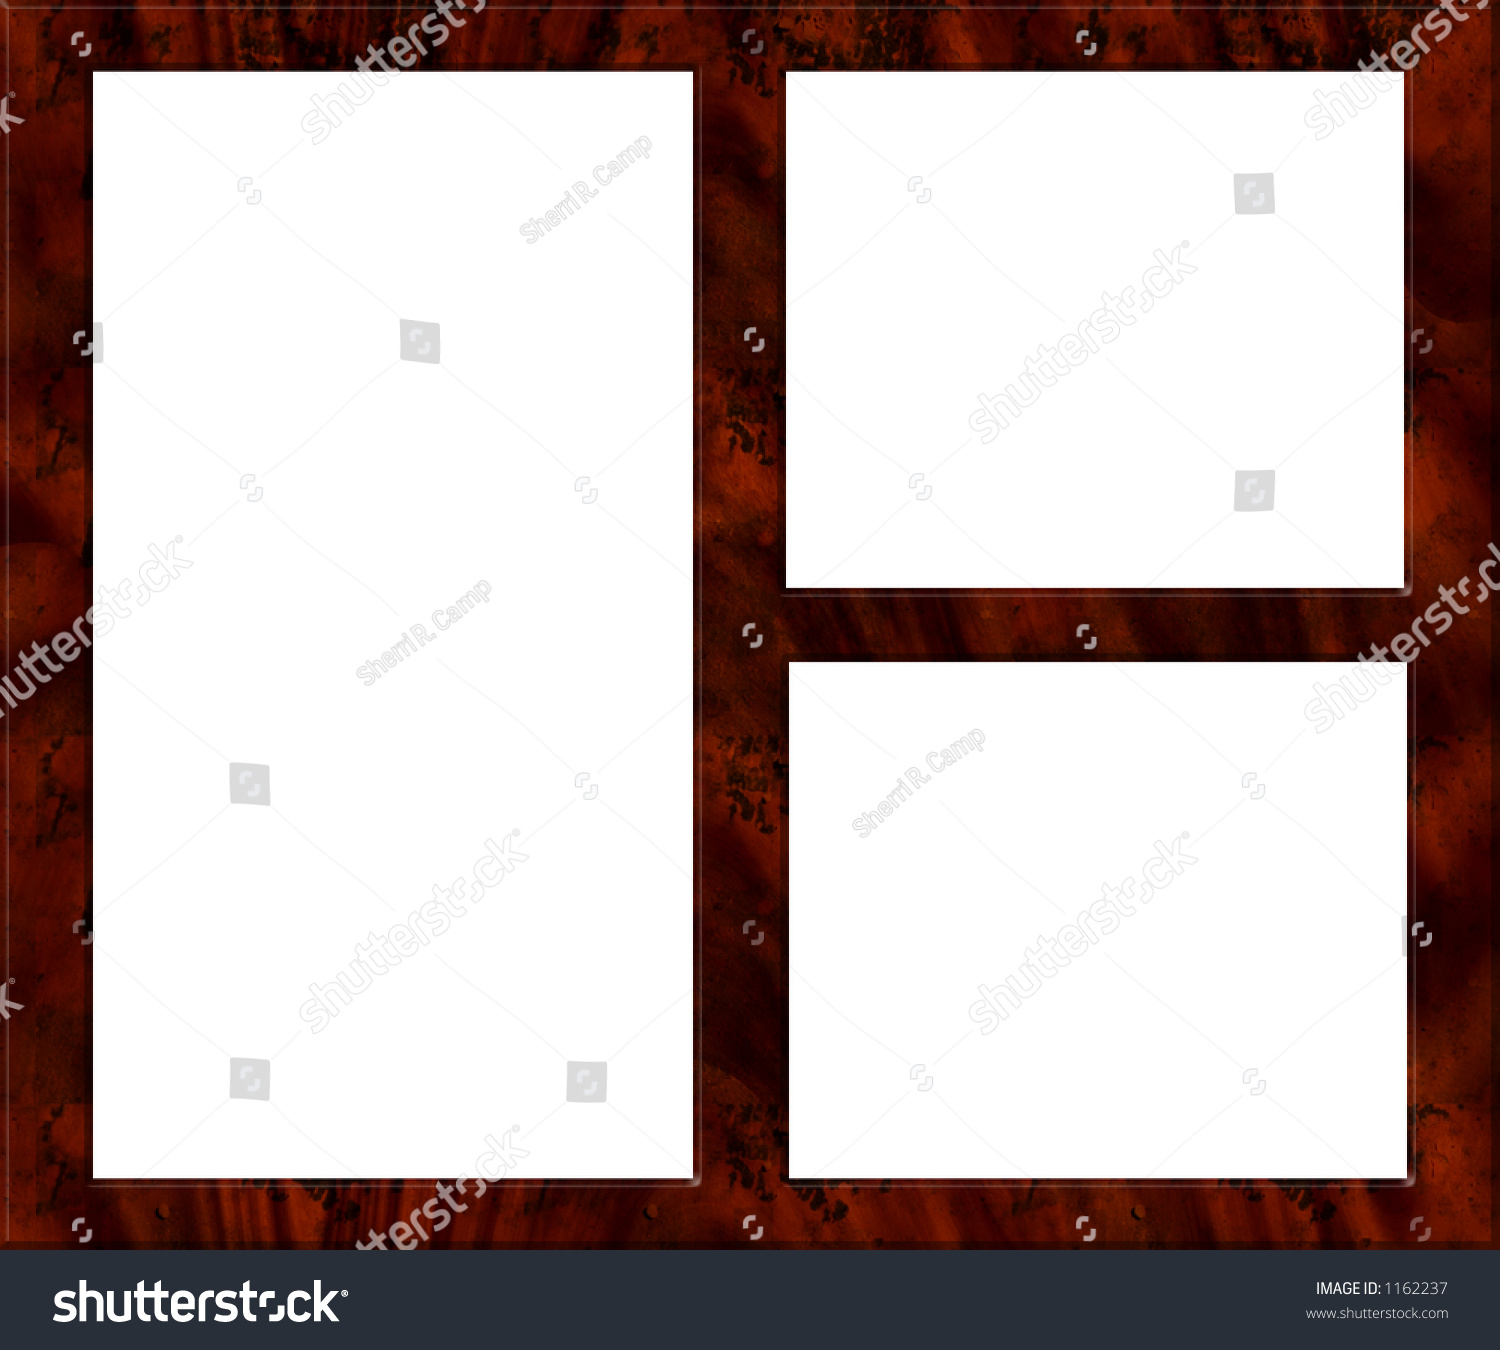 Wooden Picture Frame Multiple Images Photos Stock Illustration ...